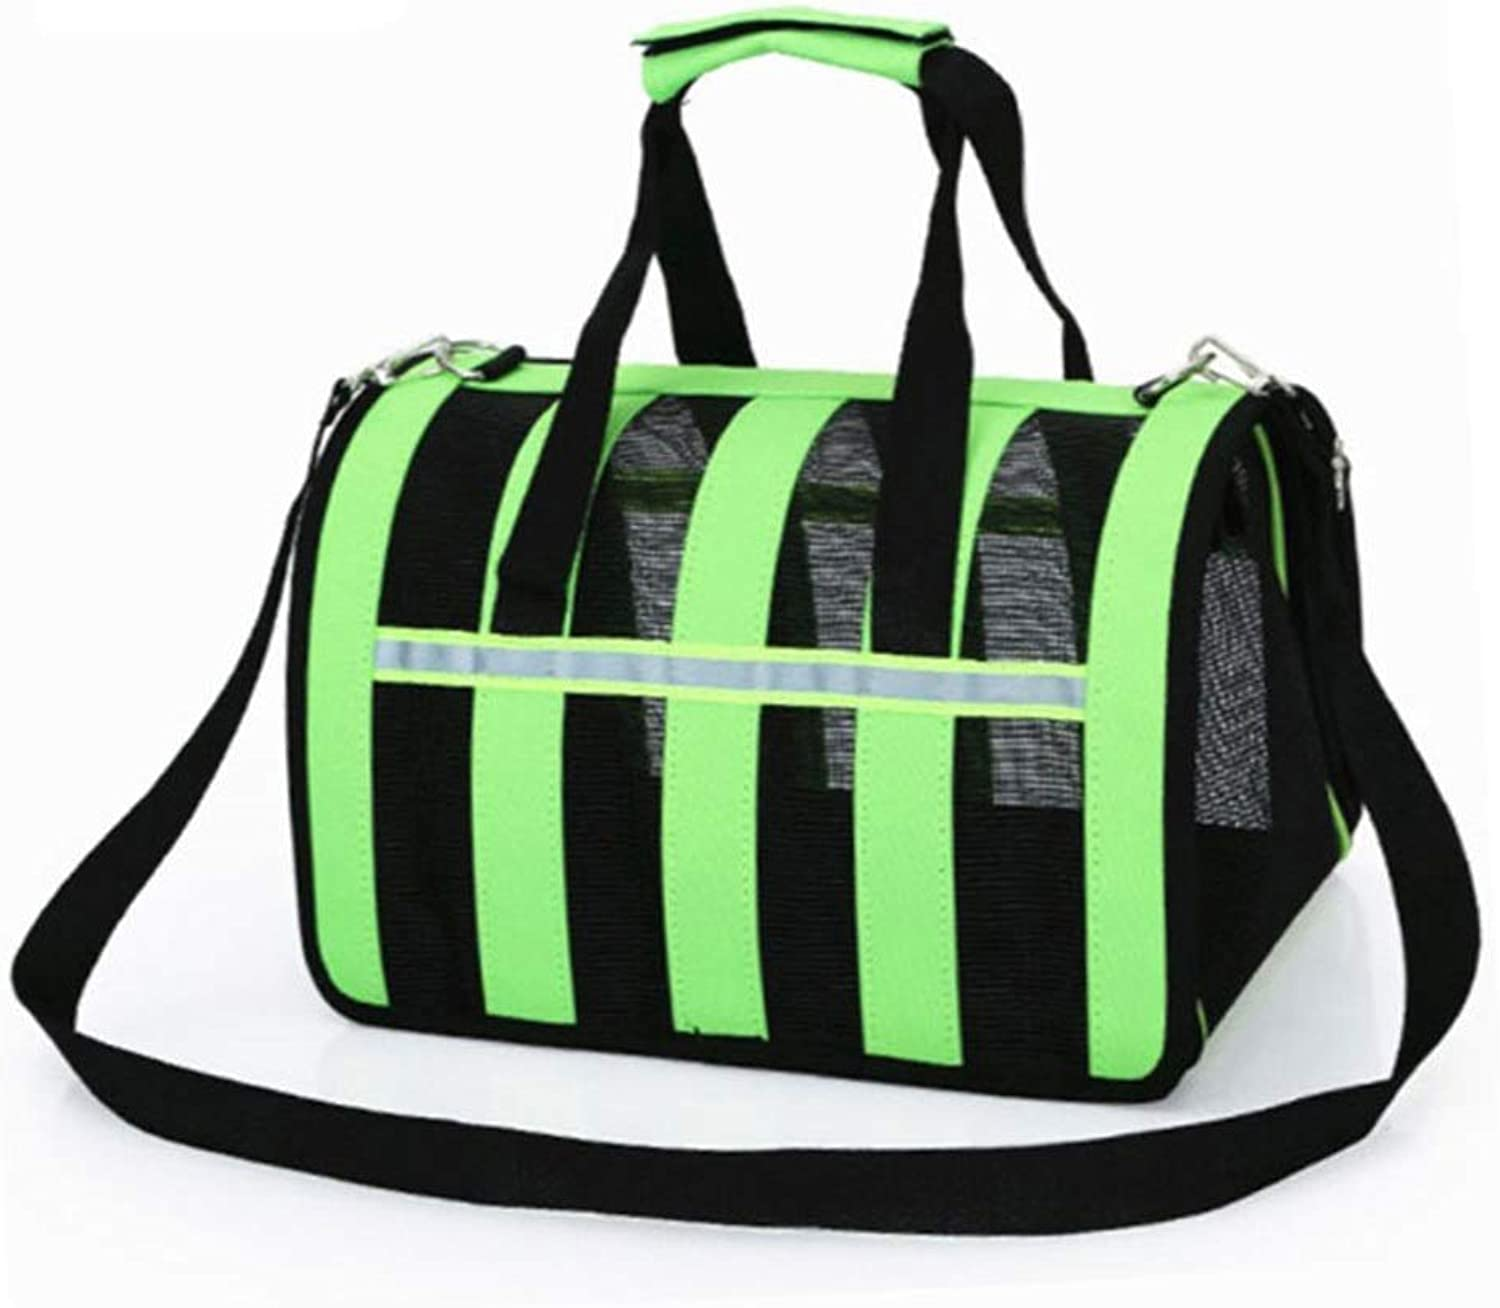 HYUE Breathable Mesh Foldaway Cat Dog Out Portable Backpack Gravid Capacity Pet Bag (color   Green, Size   L)